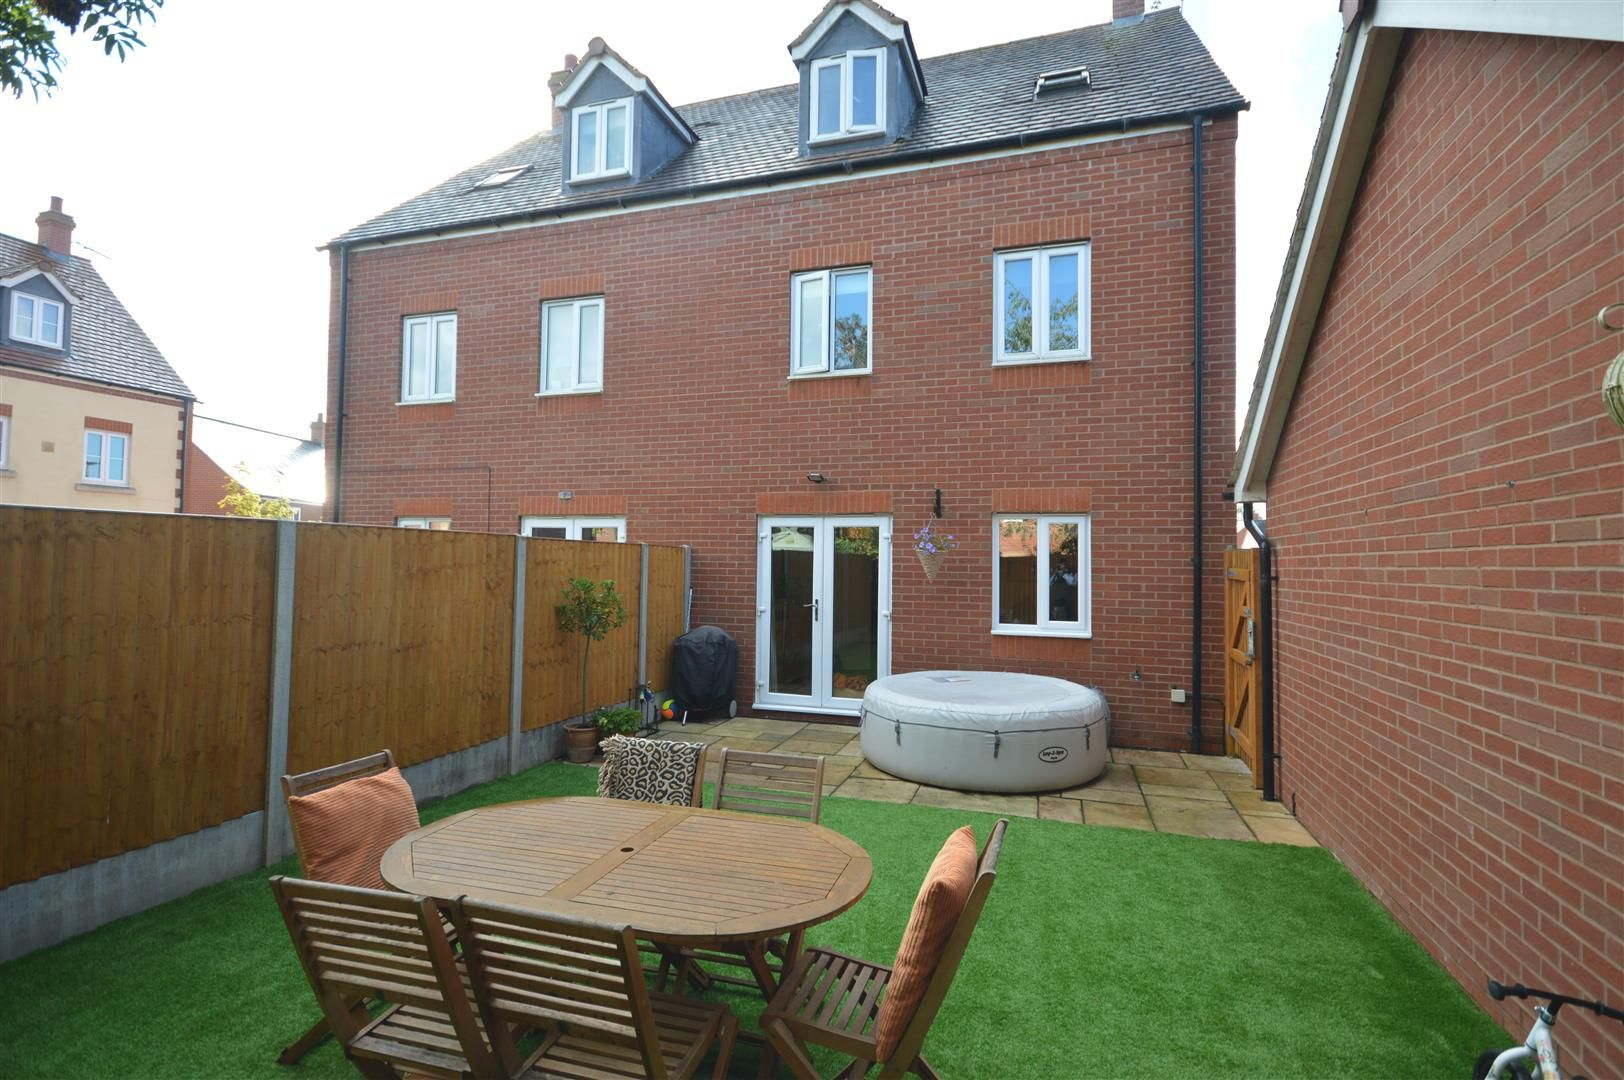 4 bed semi-detached for sale in Leominster 19